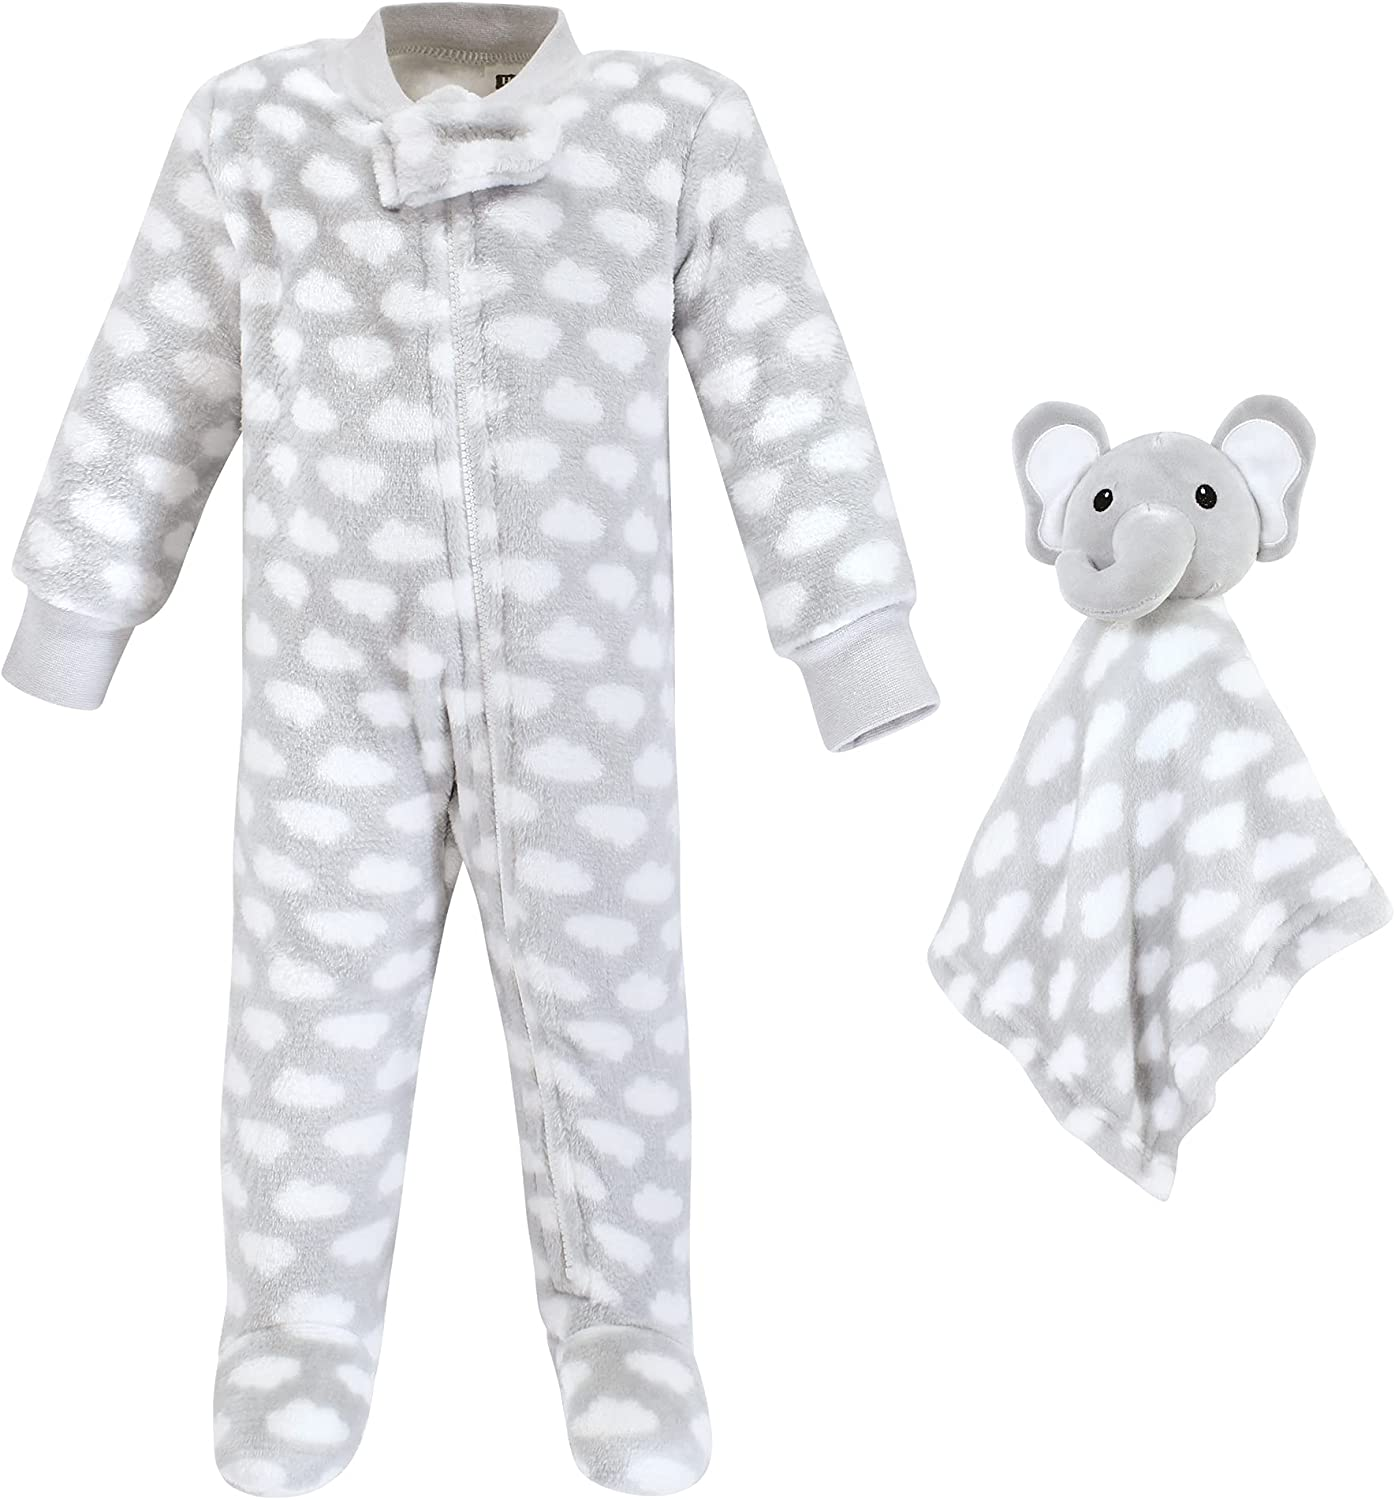 Hudson Baby Unisex Baby Flannel Plush Sleep and Play and Security Toy, Elephant Cloud, 6-9 Months